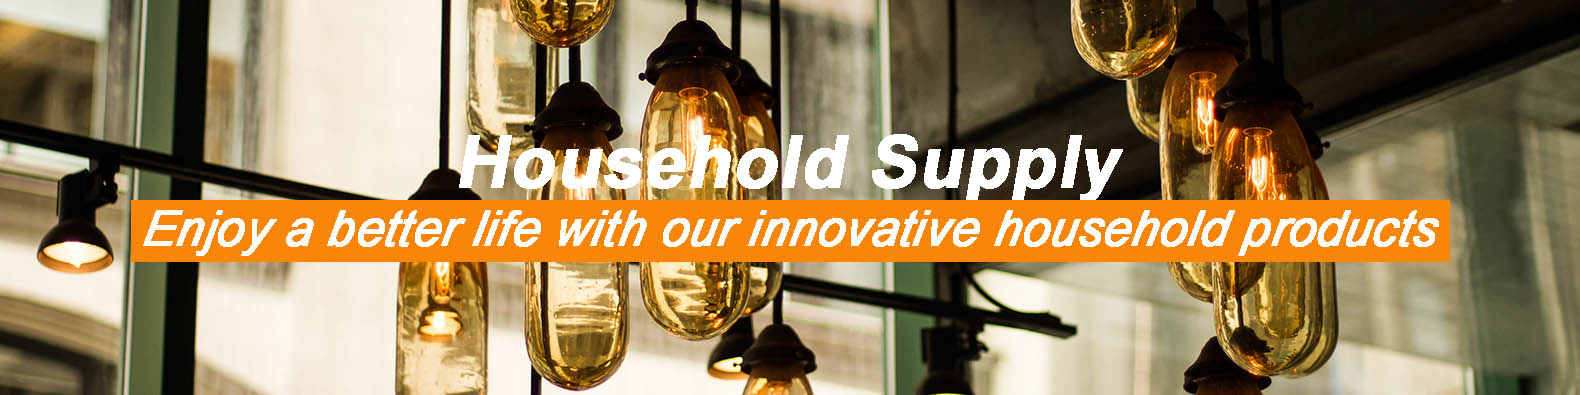 Enjoy a better life with our innovative household products